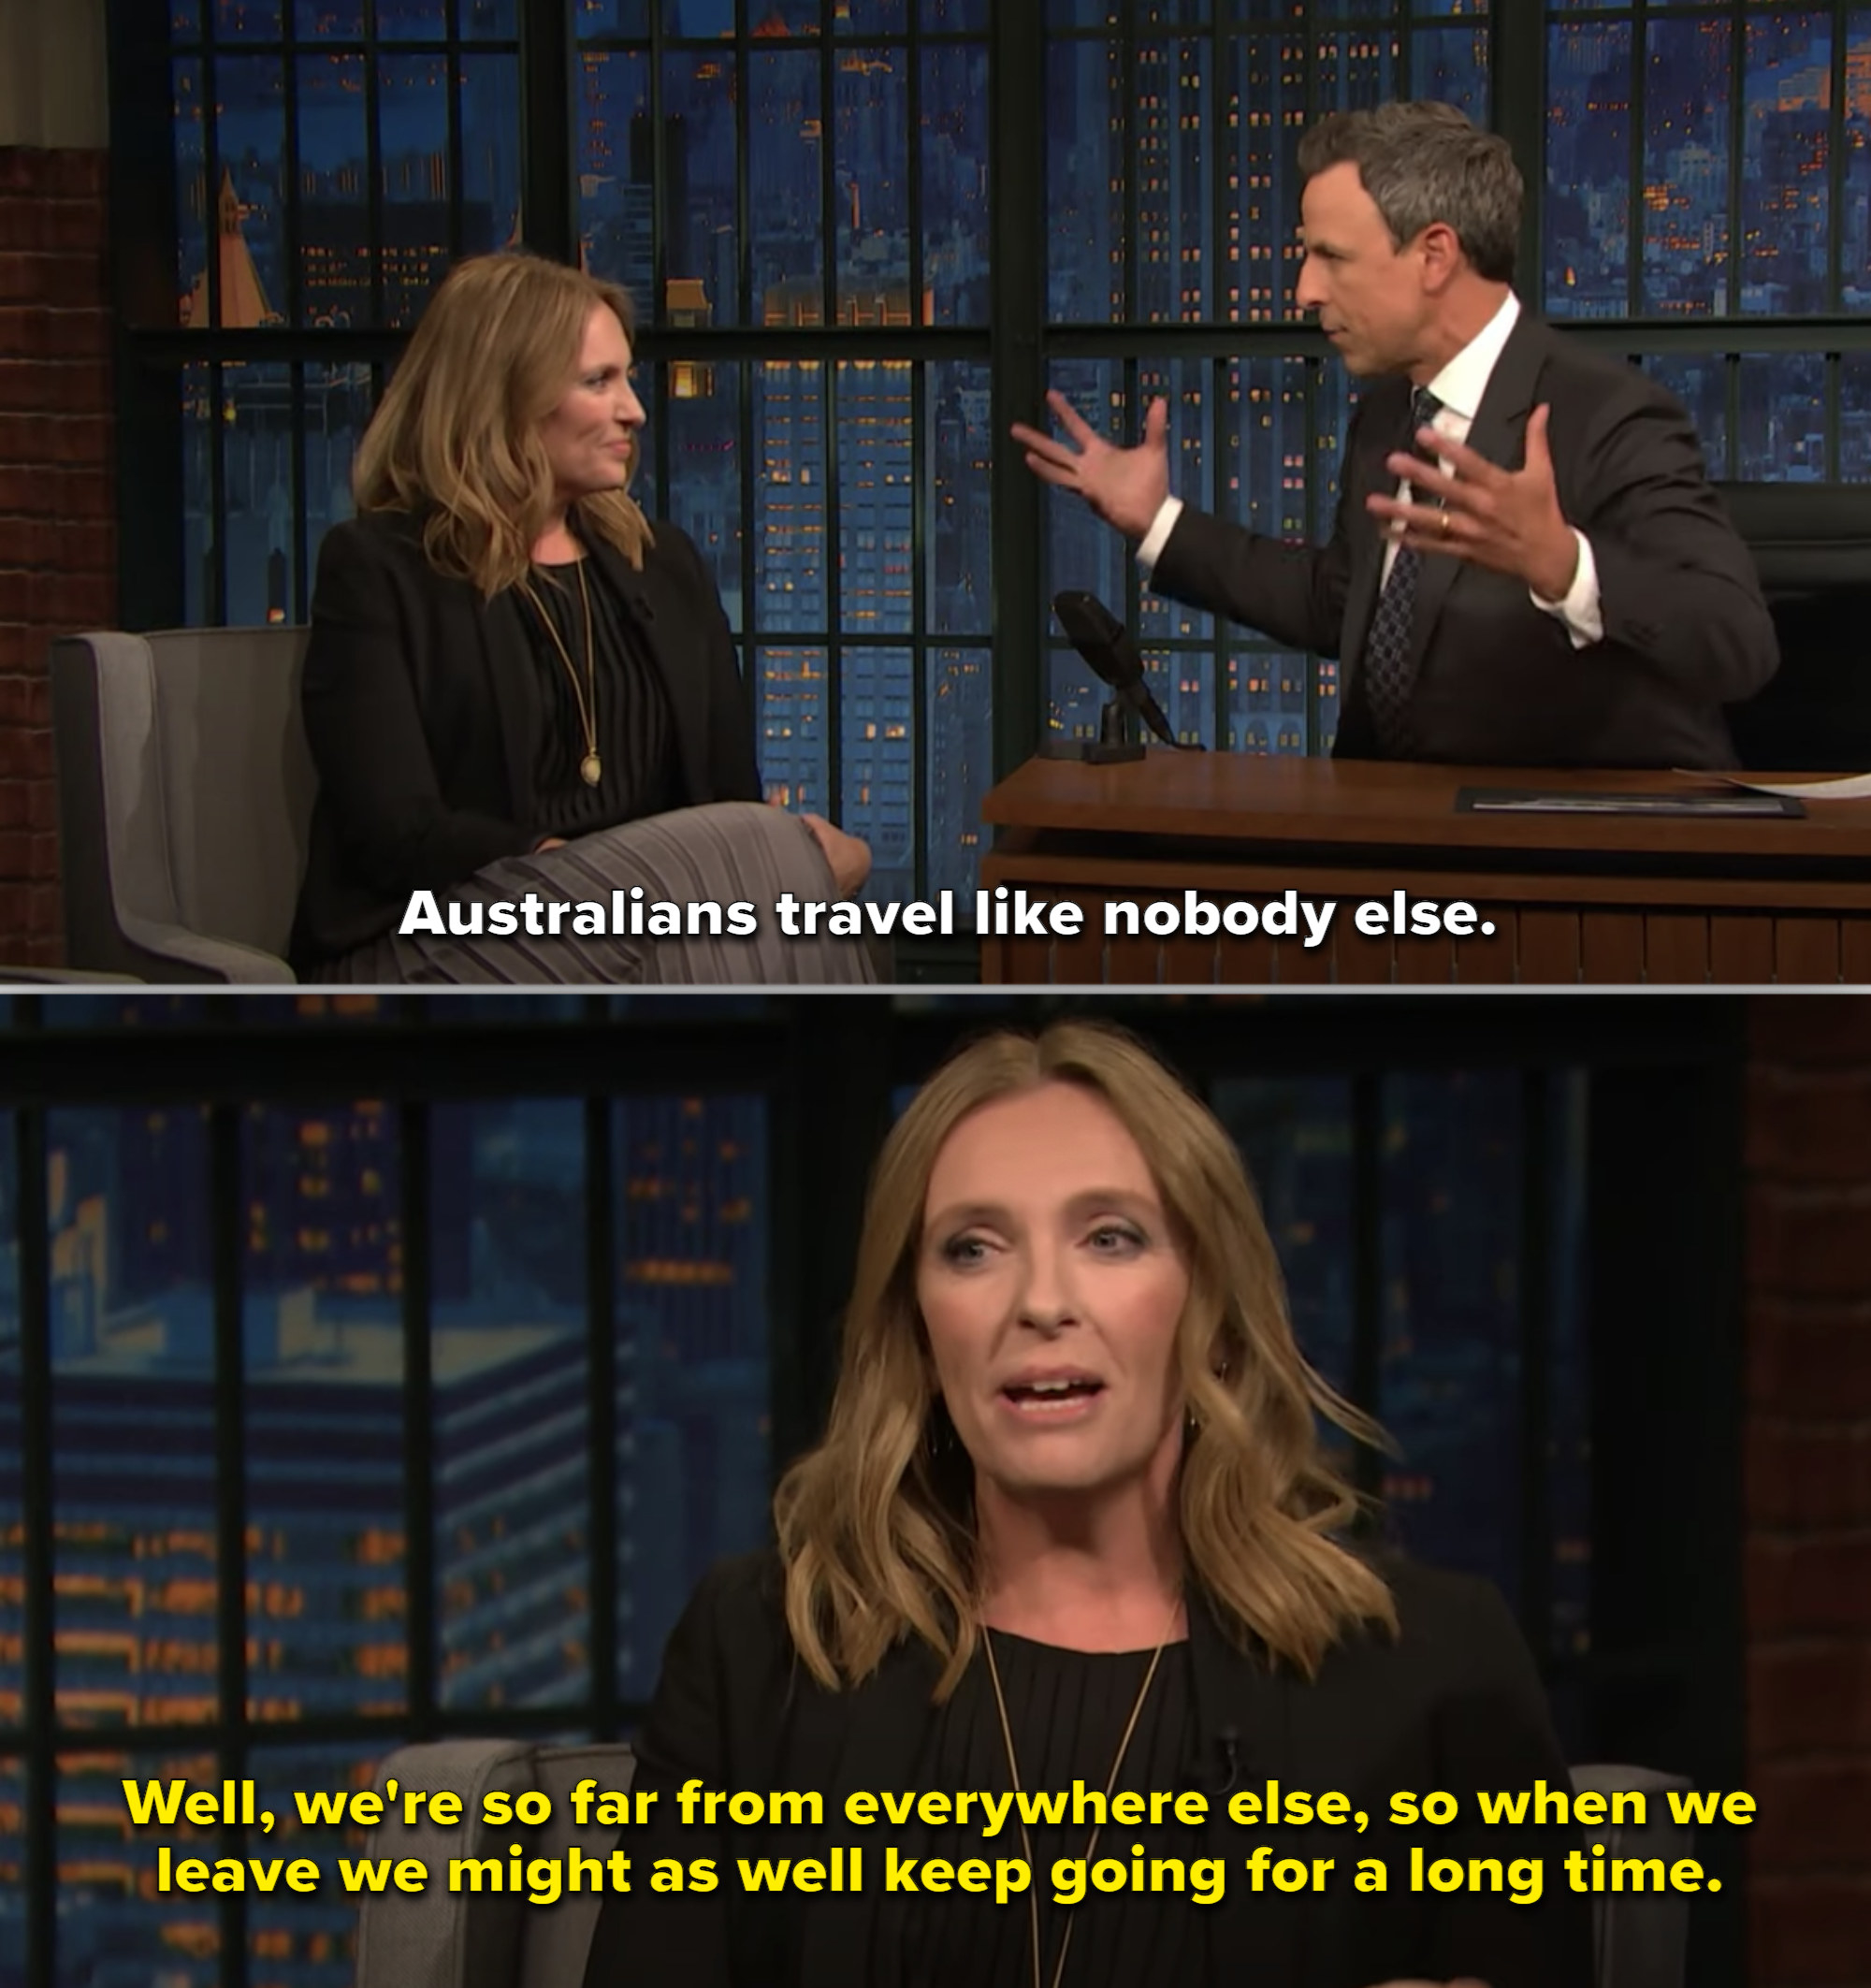 Toni Collette during an interview